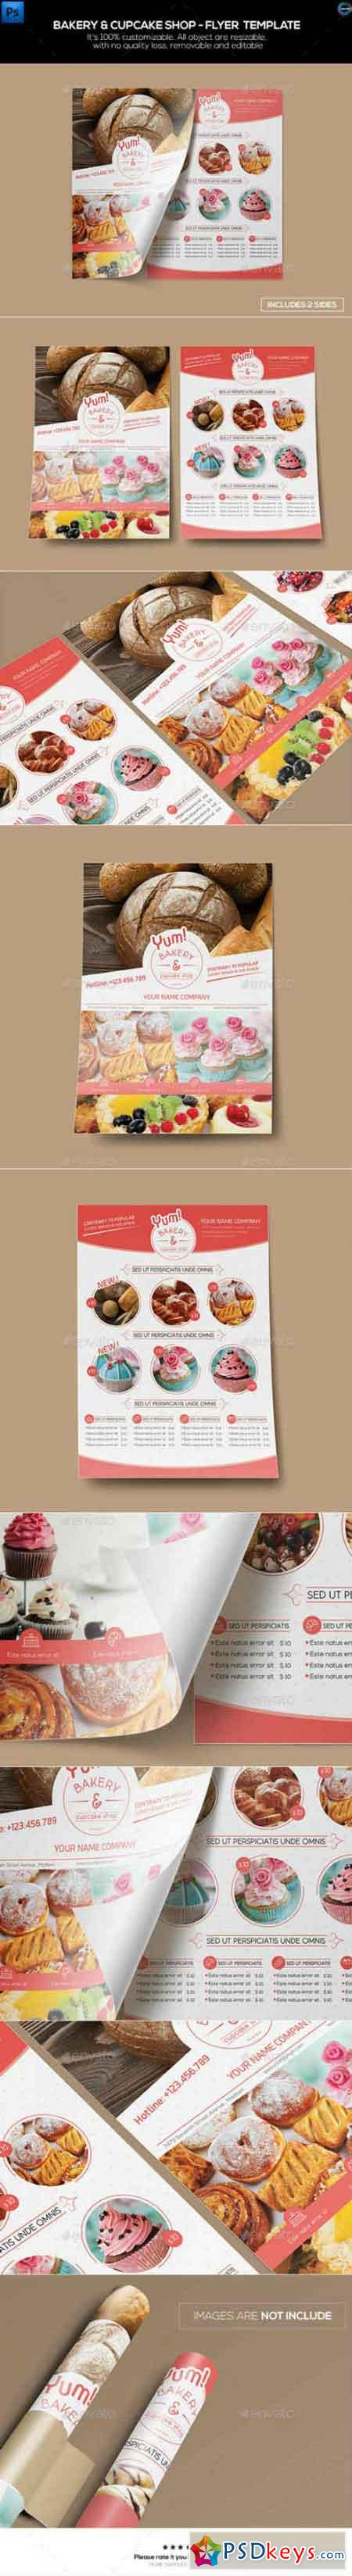 Bakery u0026 Cupcake Shop - Flyer Template 12485922 u00bb Free Download ...